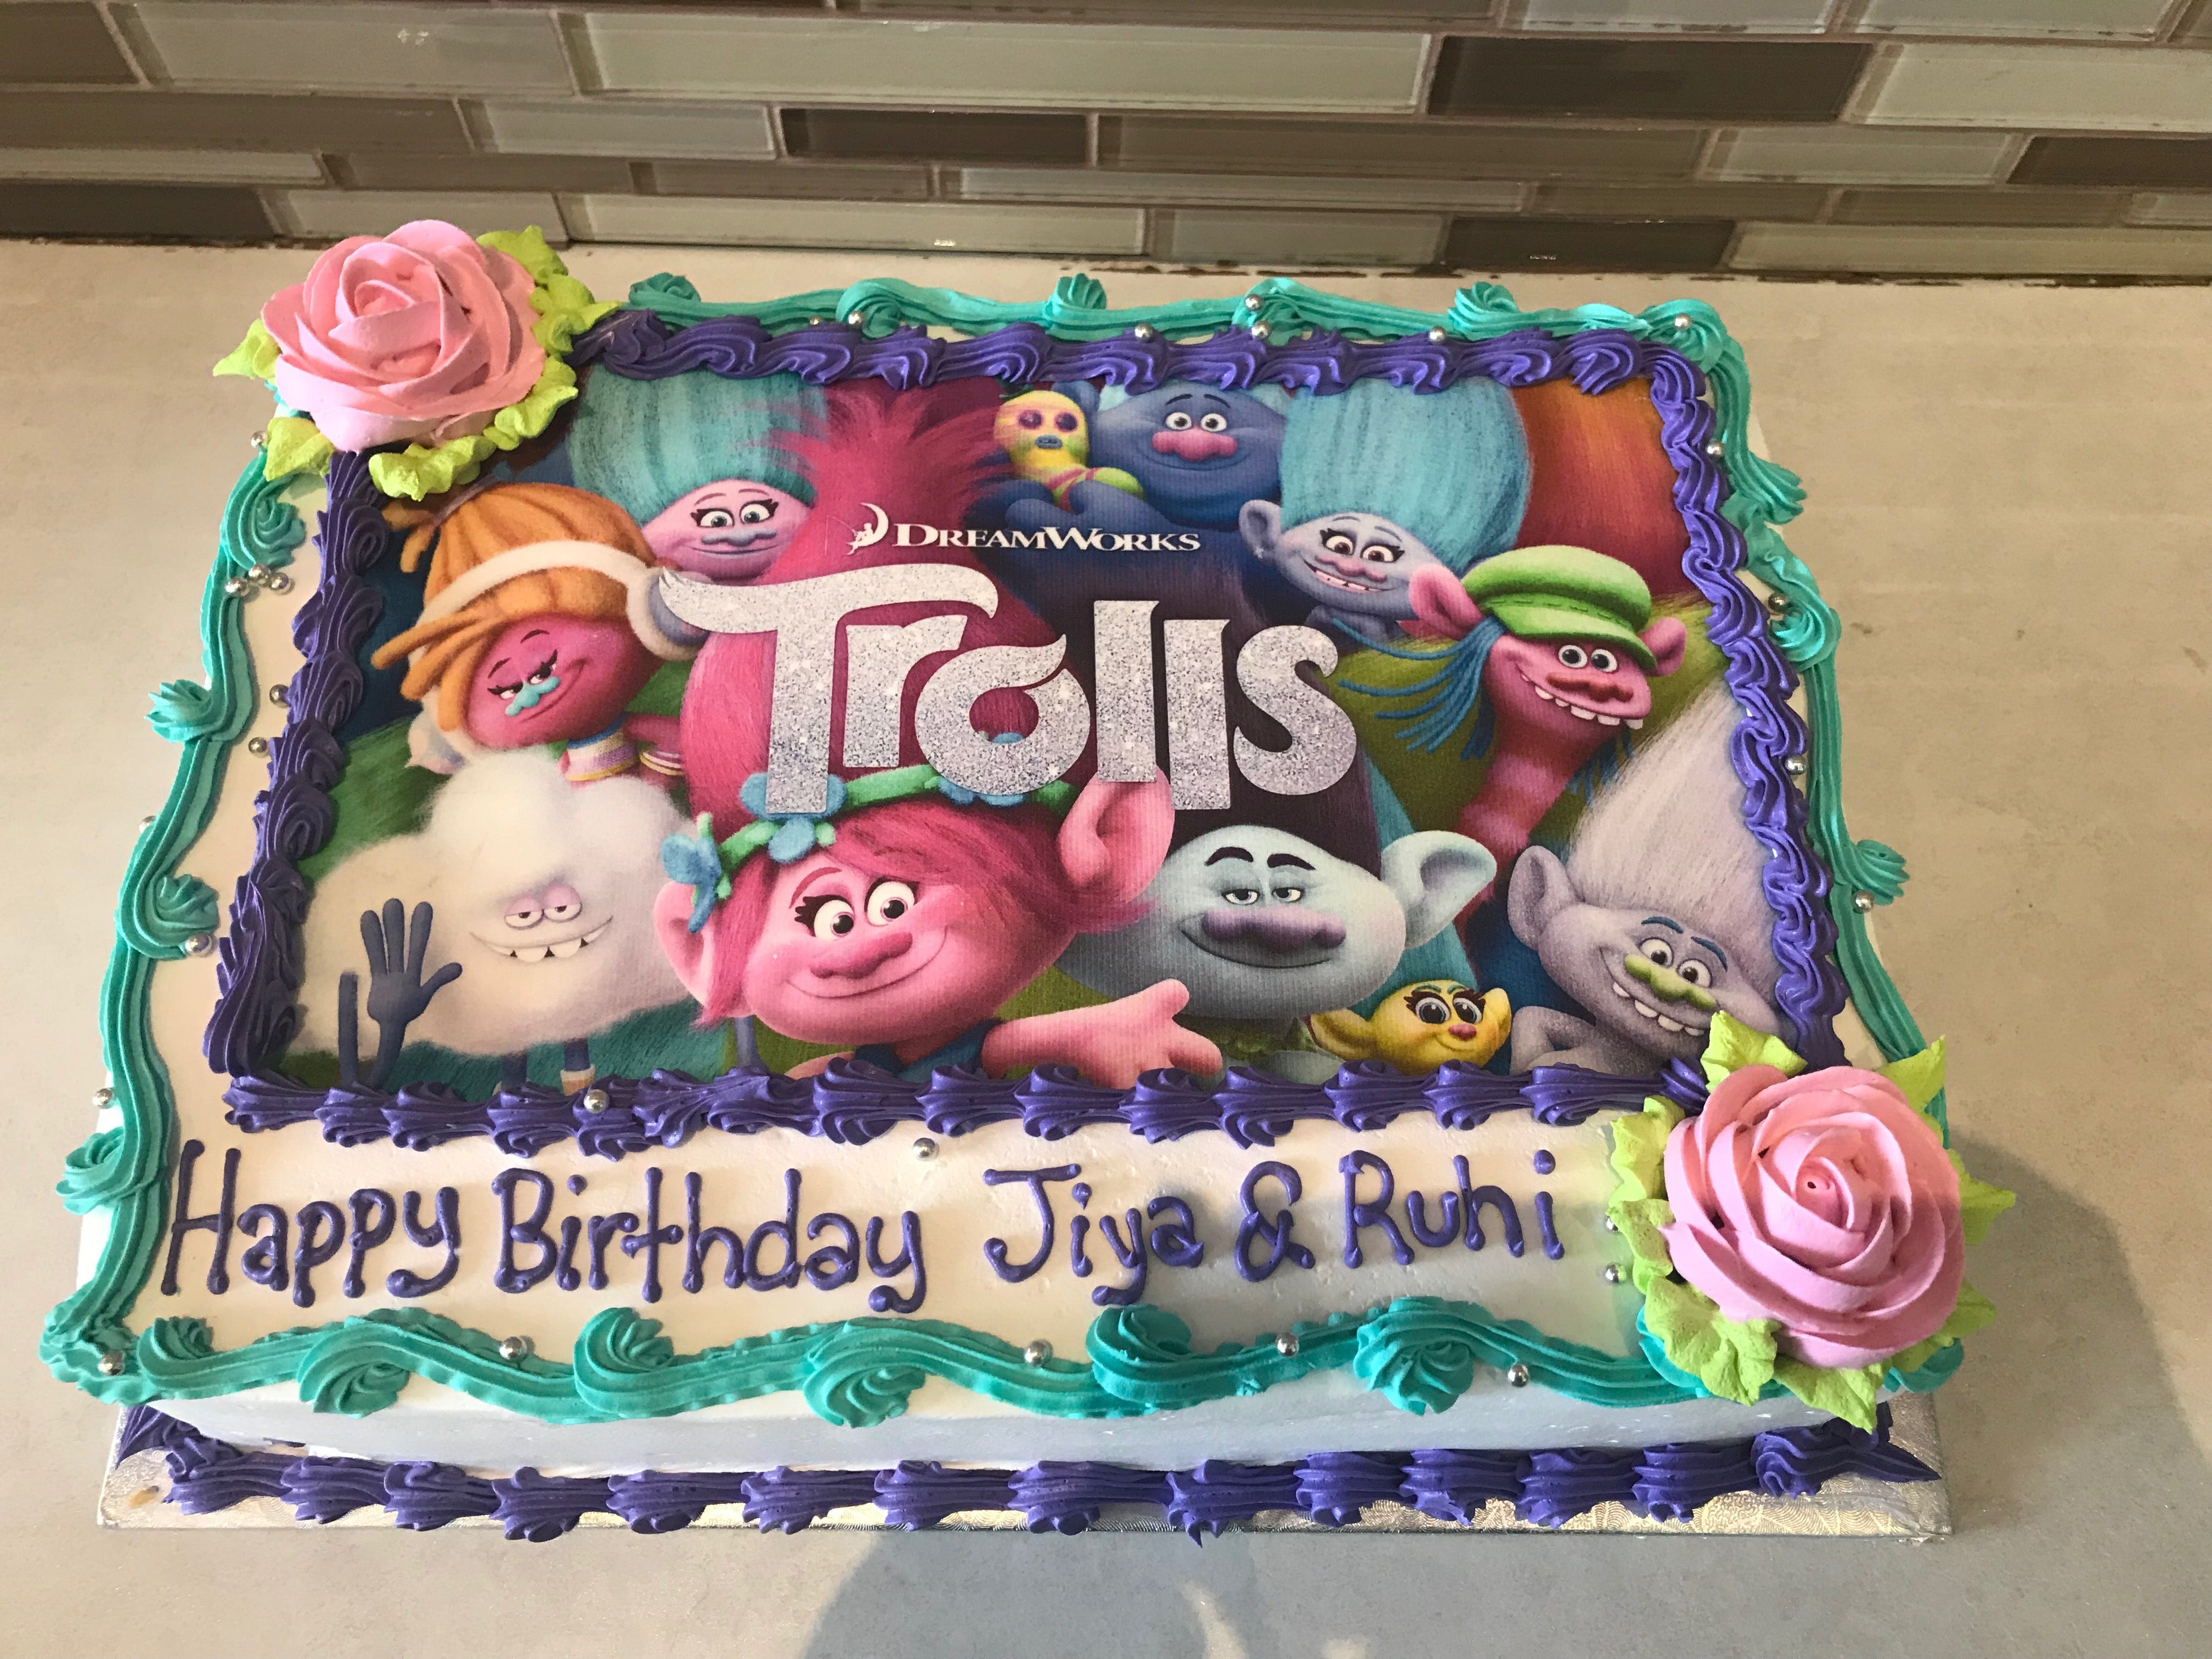 Trolls Photo Cake - Rashmi's Bakery